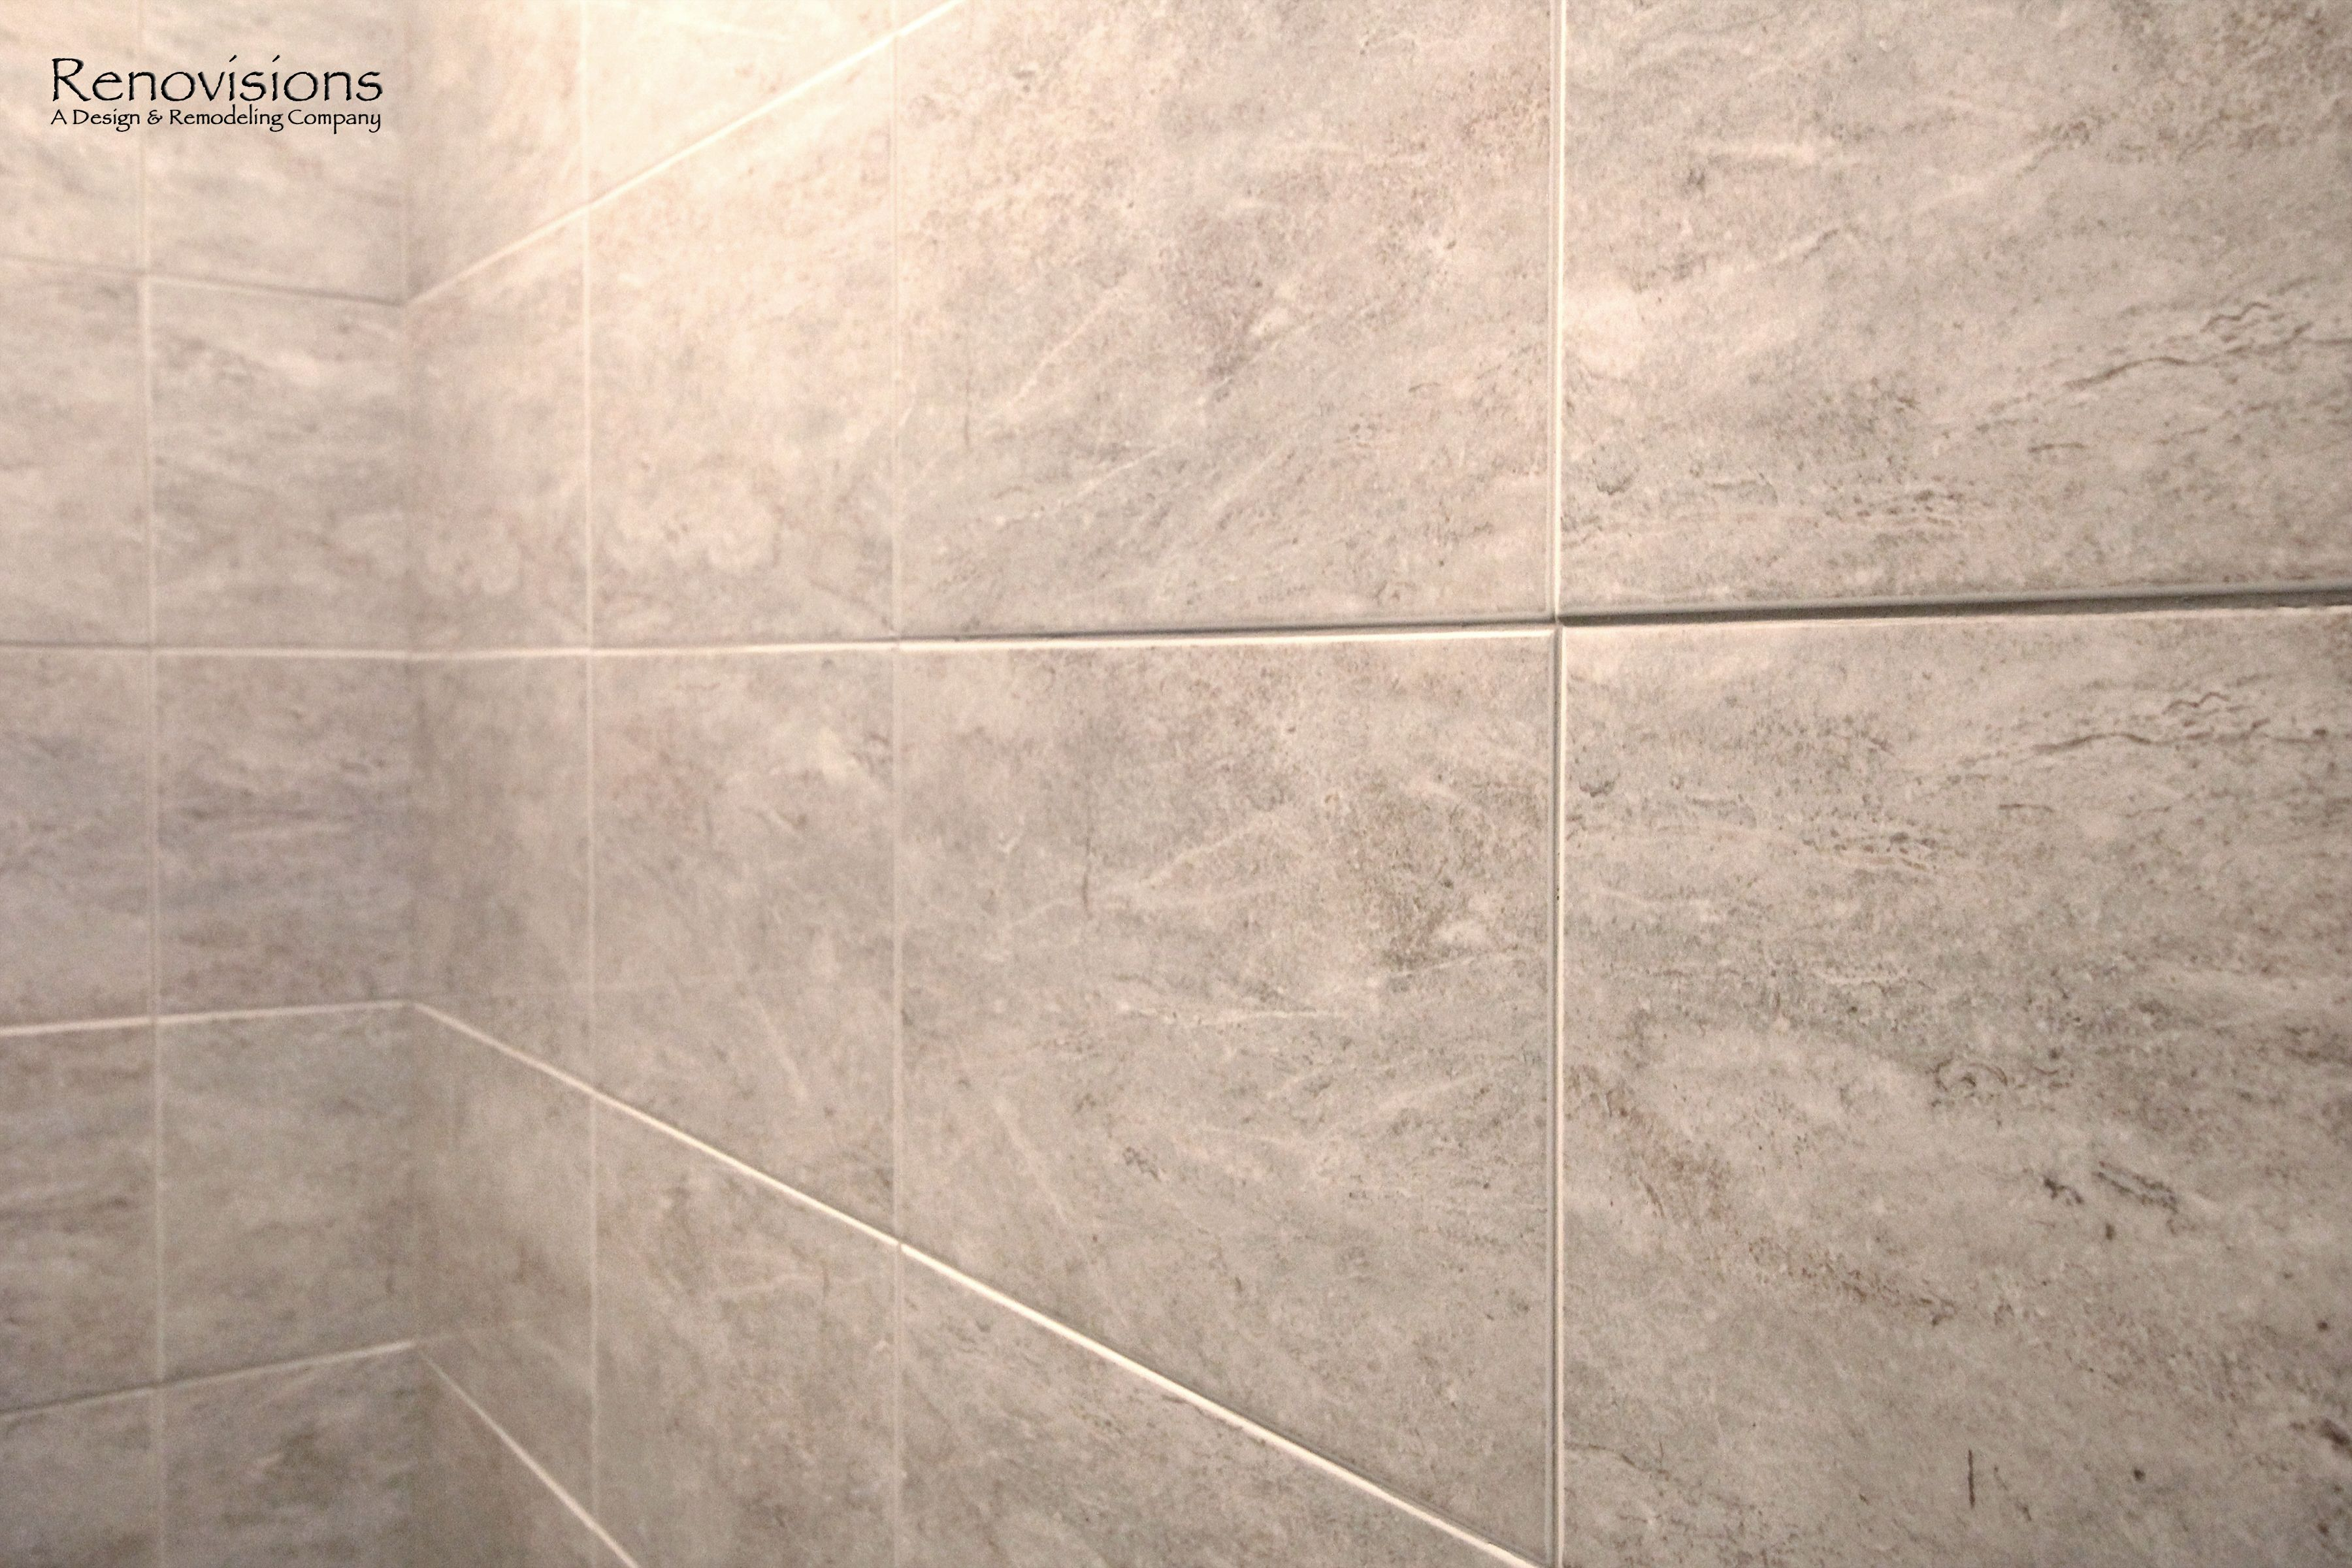 Bathroom remodel by Renovisions. Contemporary style, grey tile, tiled shower walls